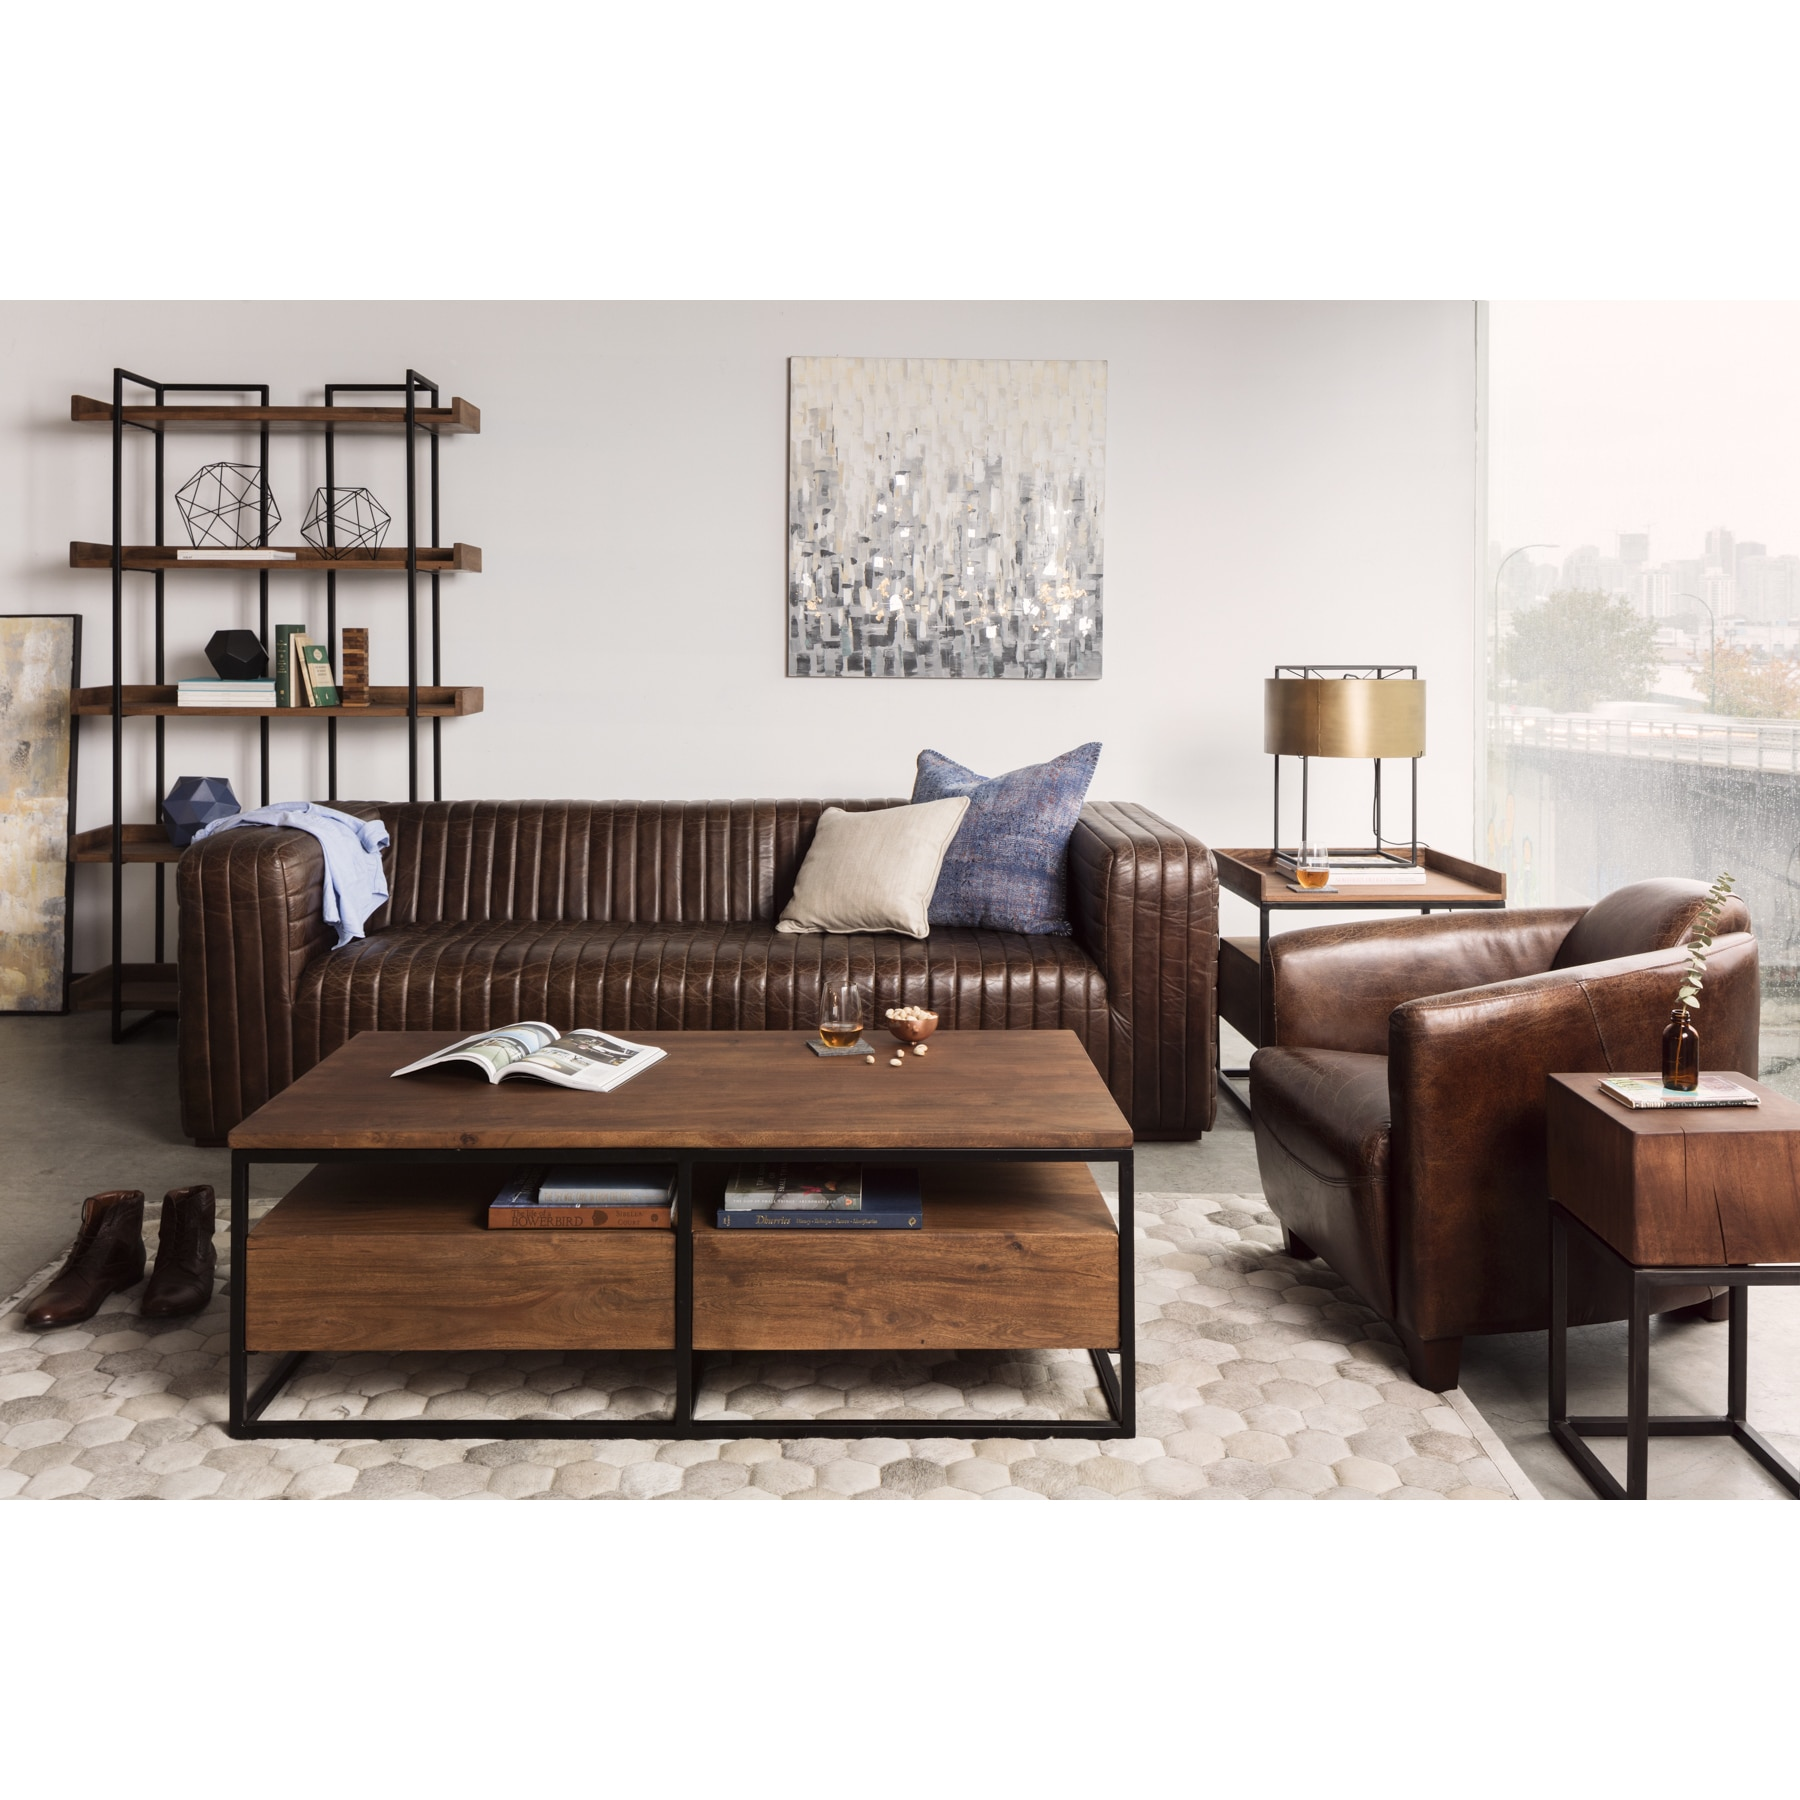 Picture of: Aurelle Home Brown Leather Lounge Accent Chair 29 5 Wide X 33 Deep On Sale Overstock 9531034